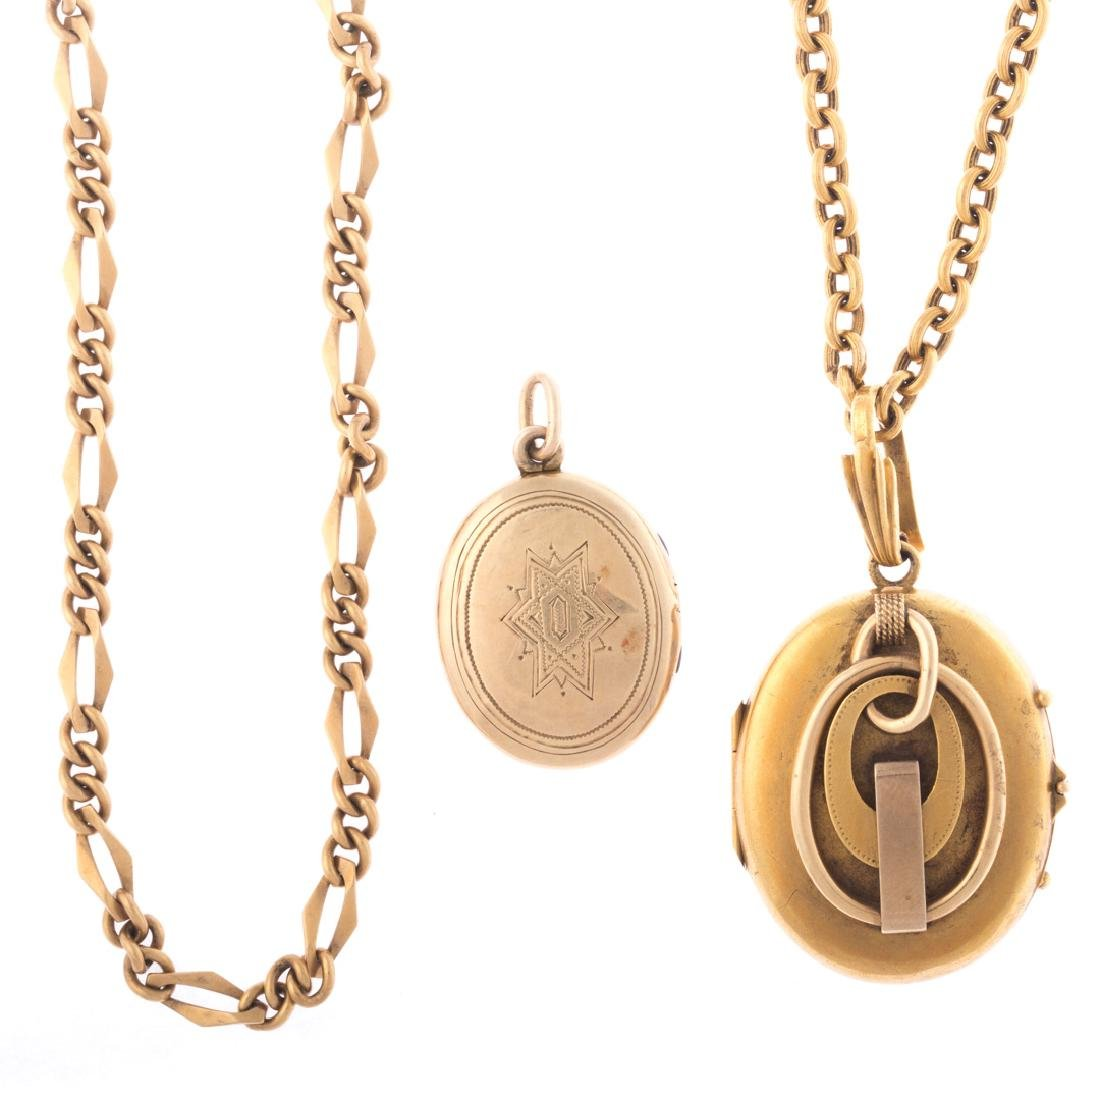 A Pair of Lockets Accompanied by Chains